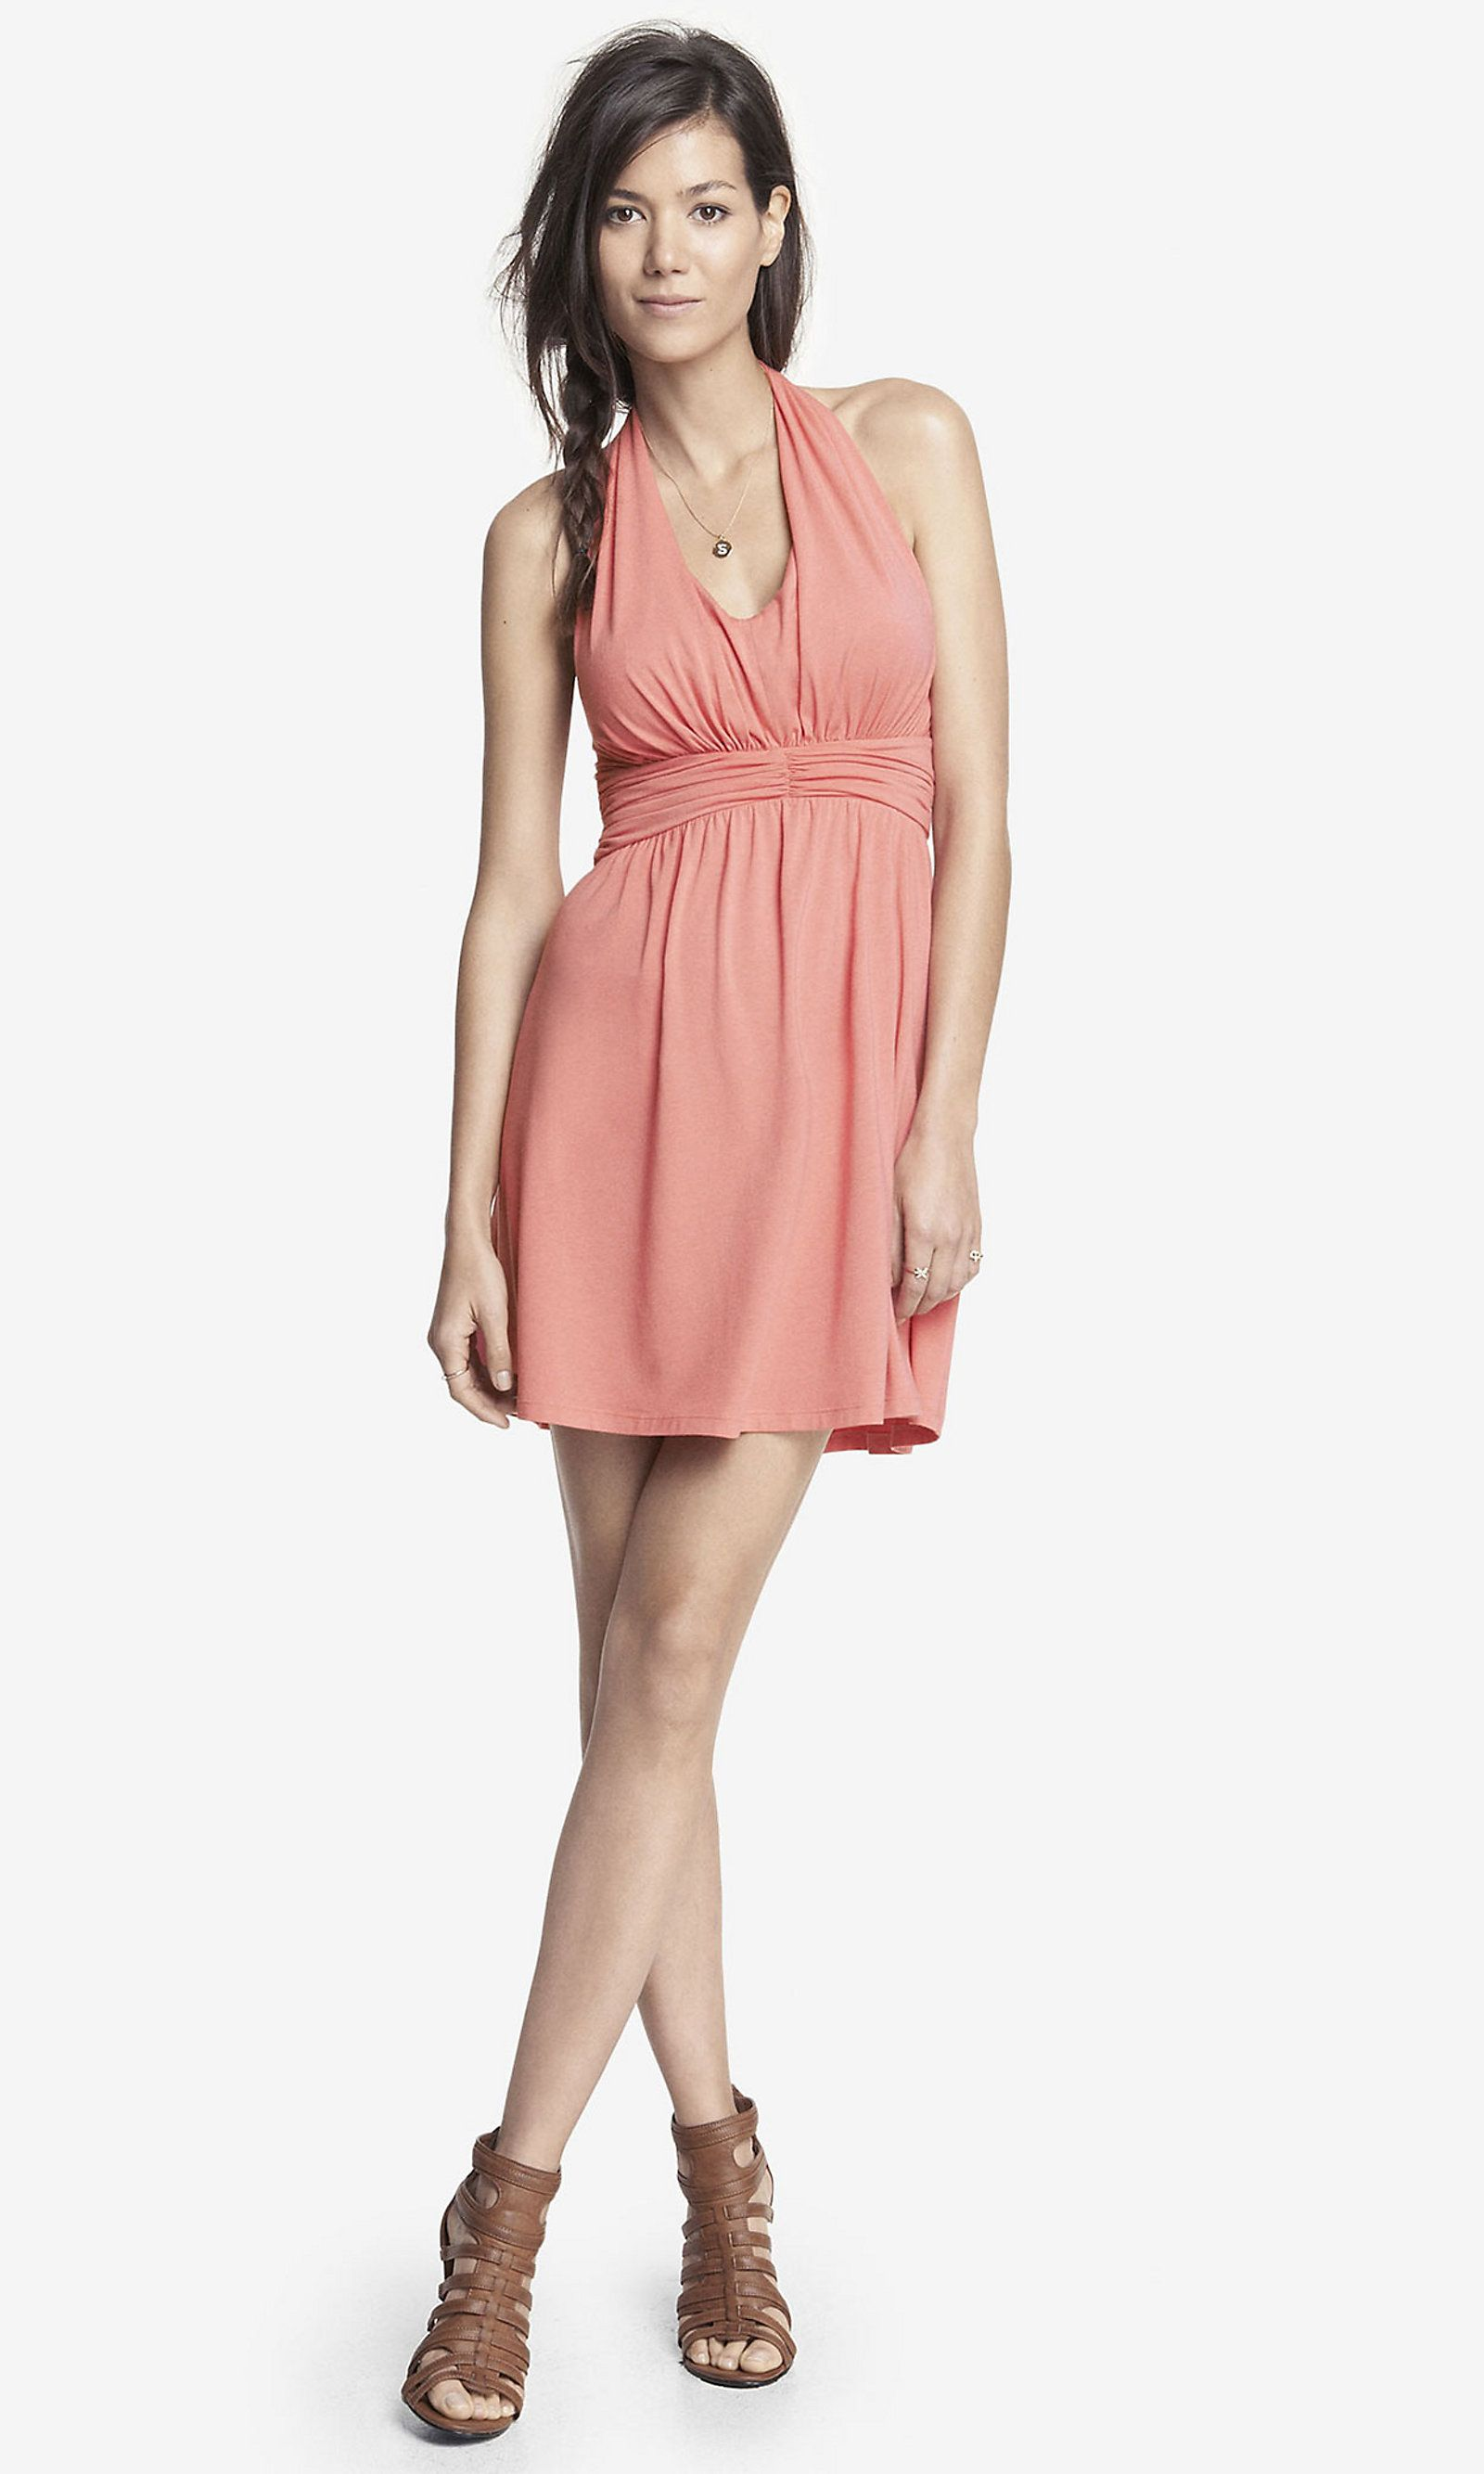 Light pink ruched jersey halter dress express if i had all the